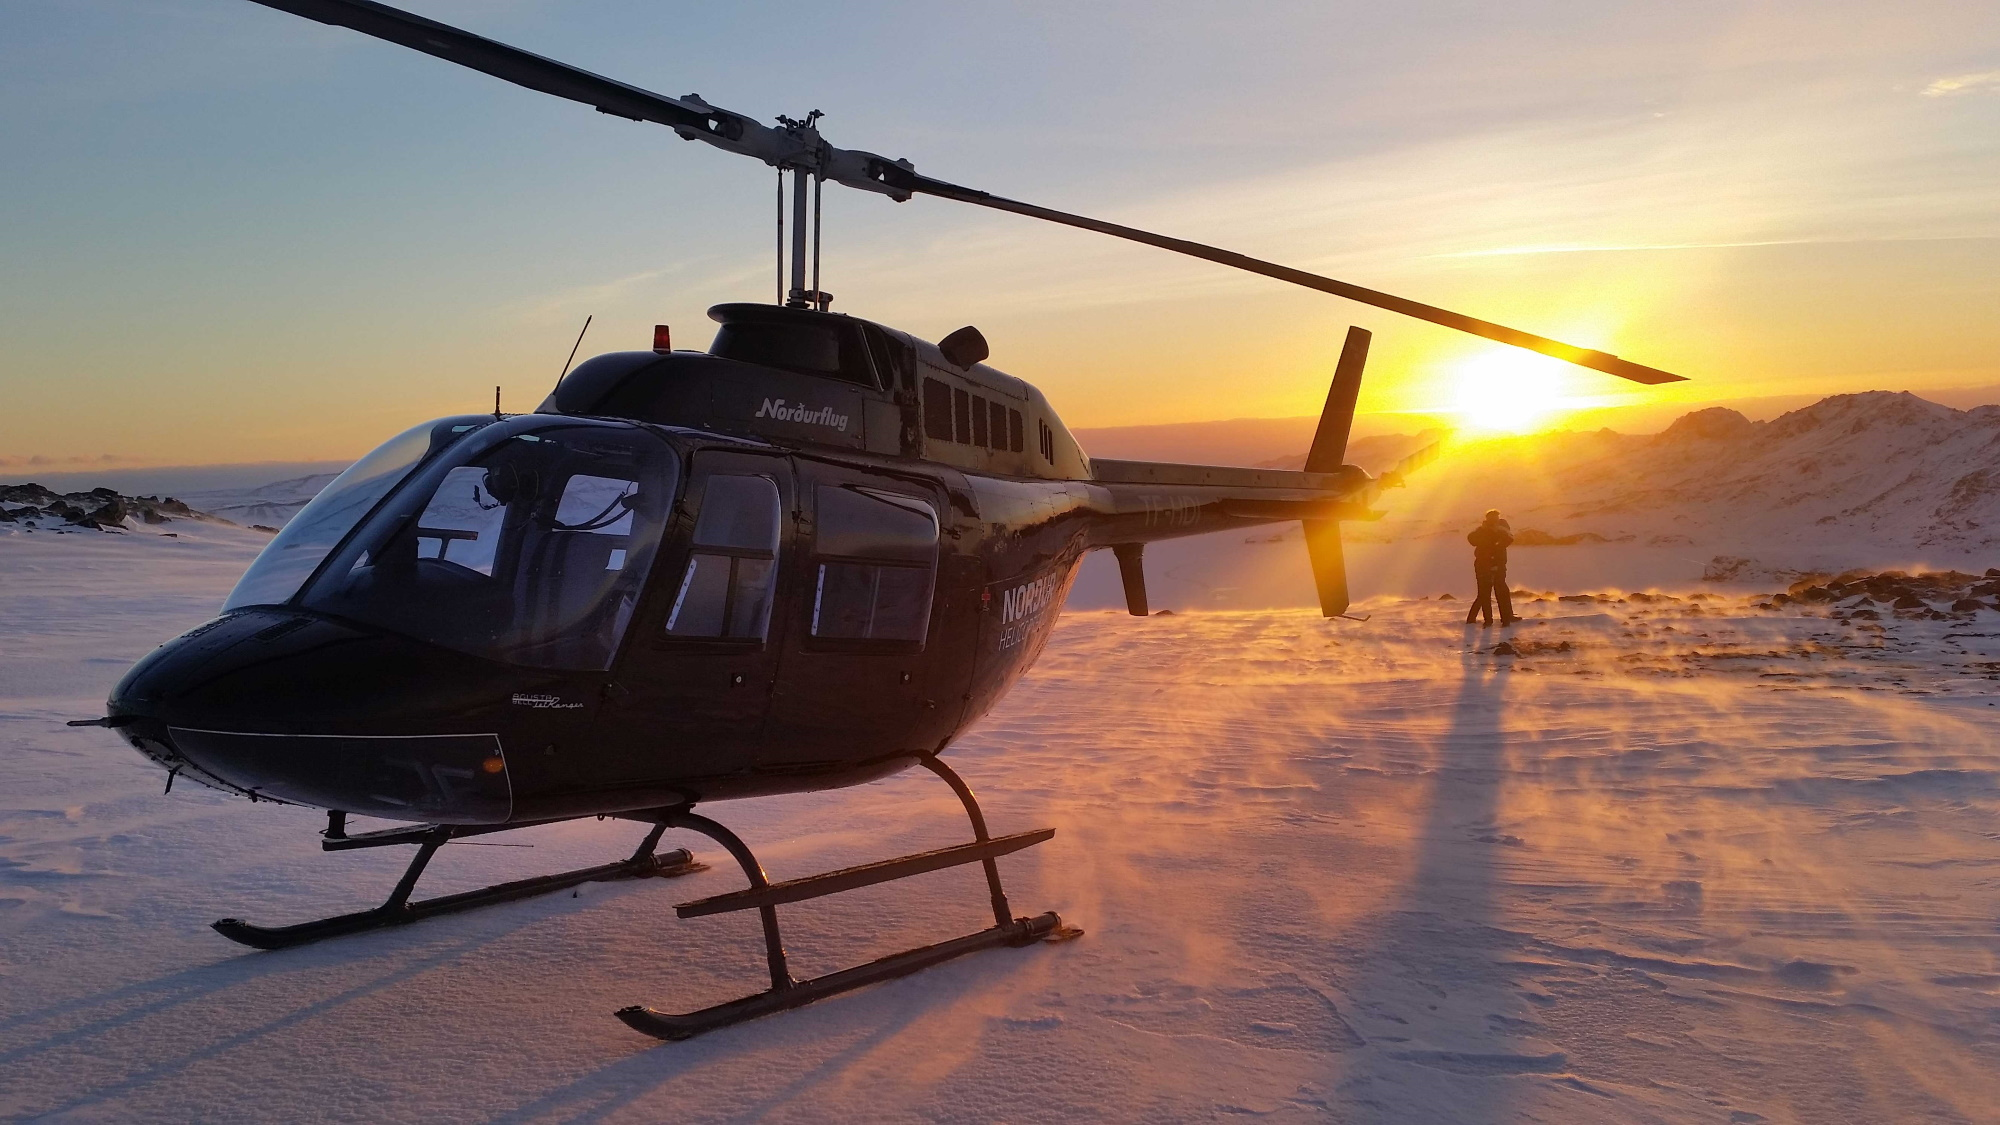 A helicopter in snow at sunset.